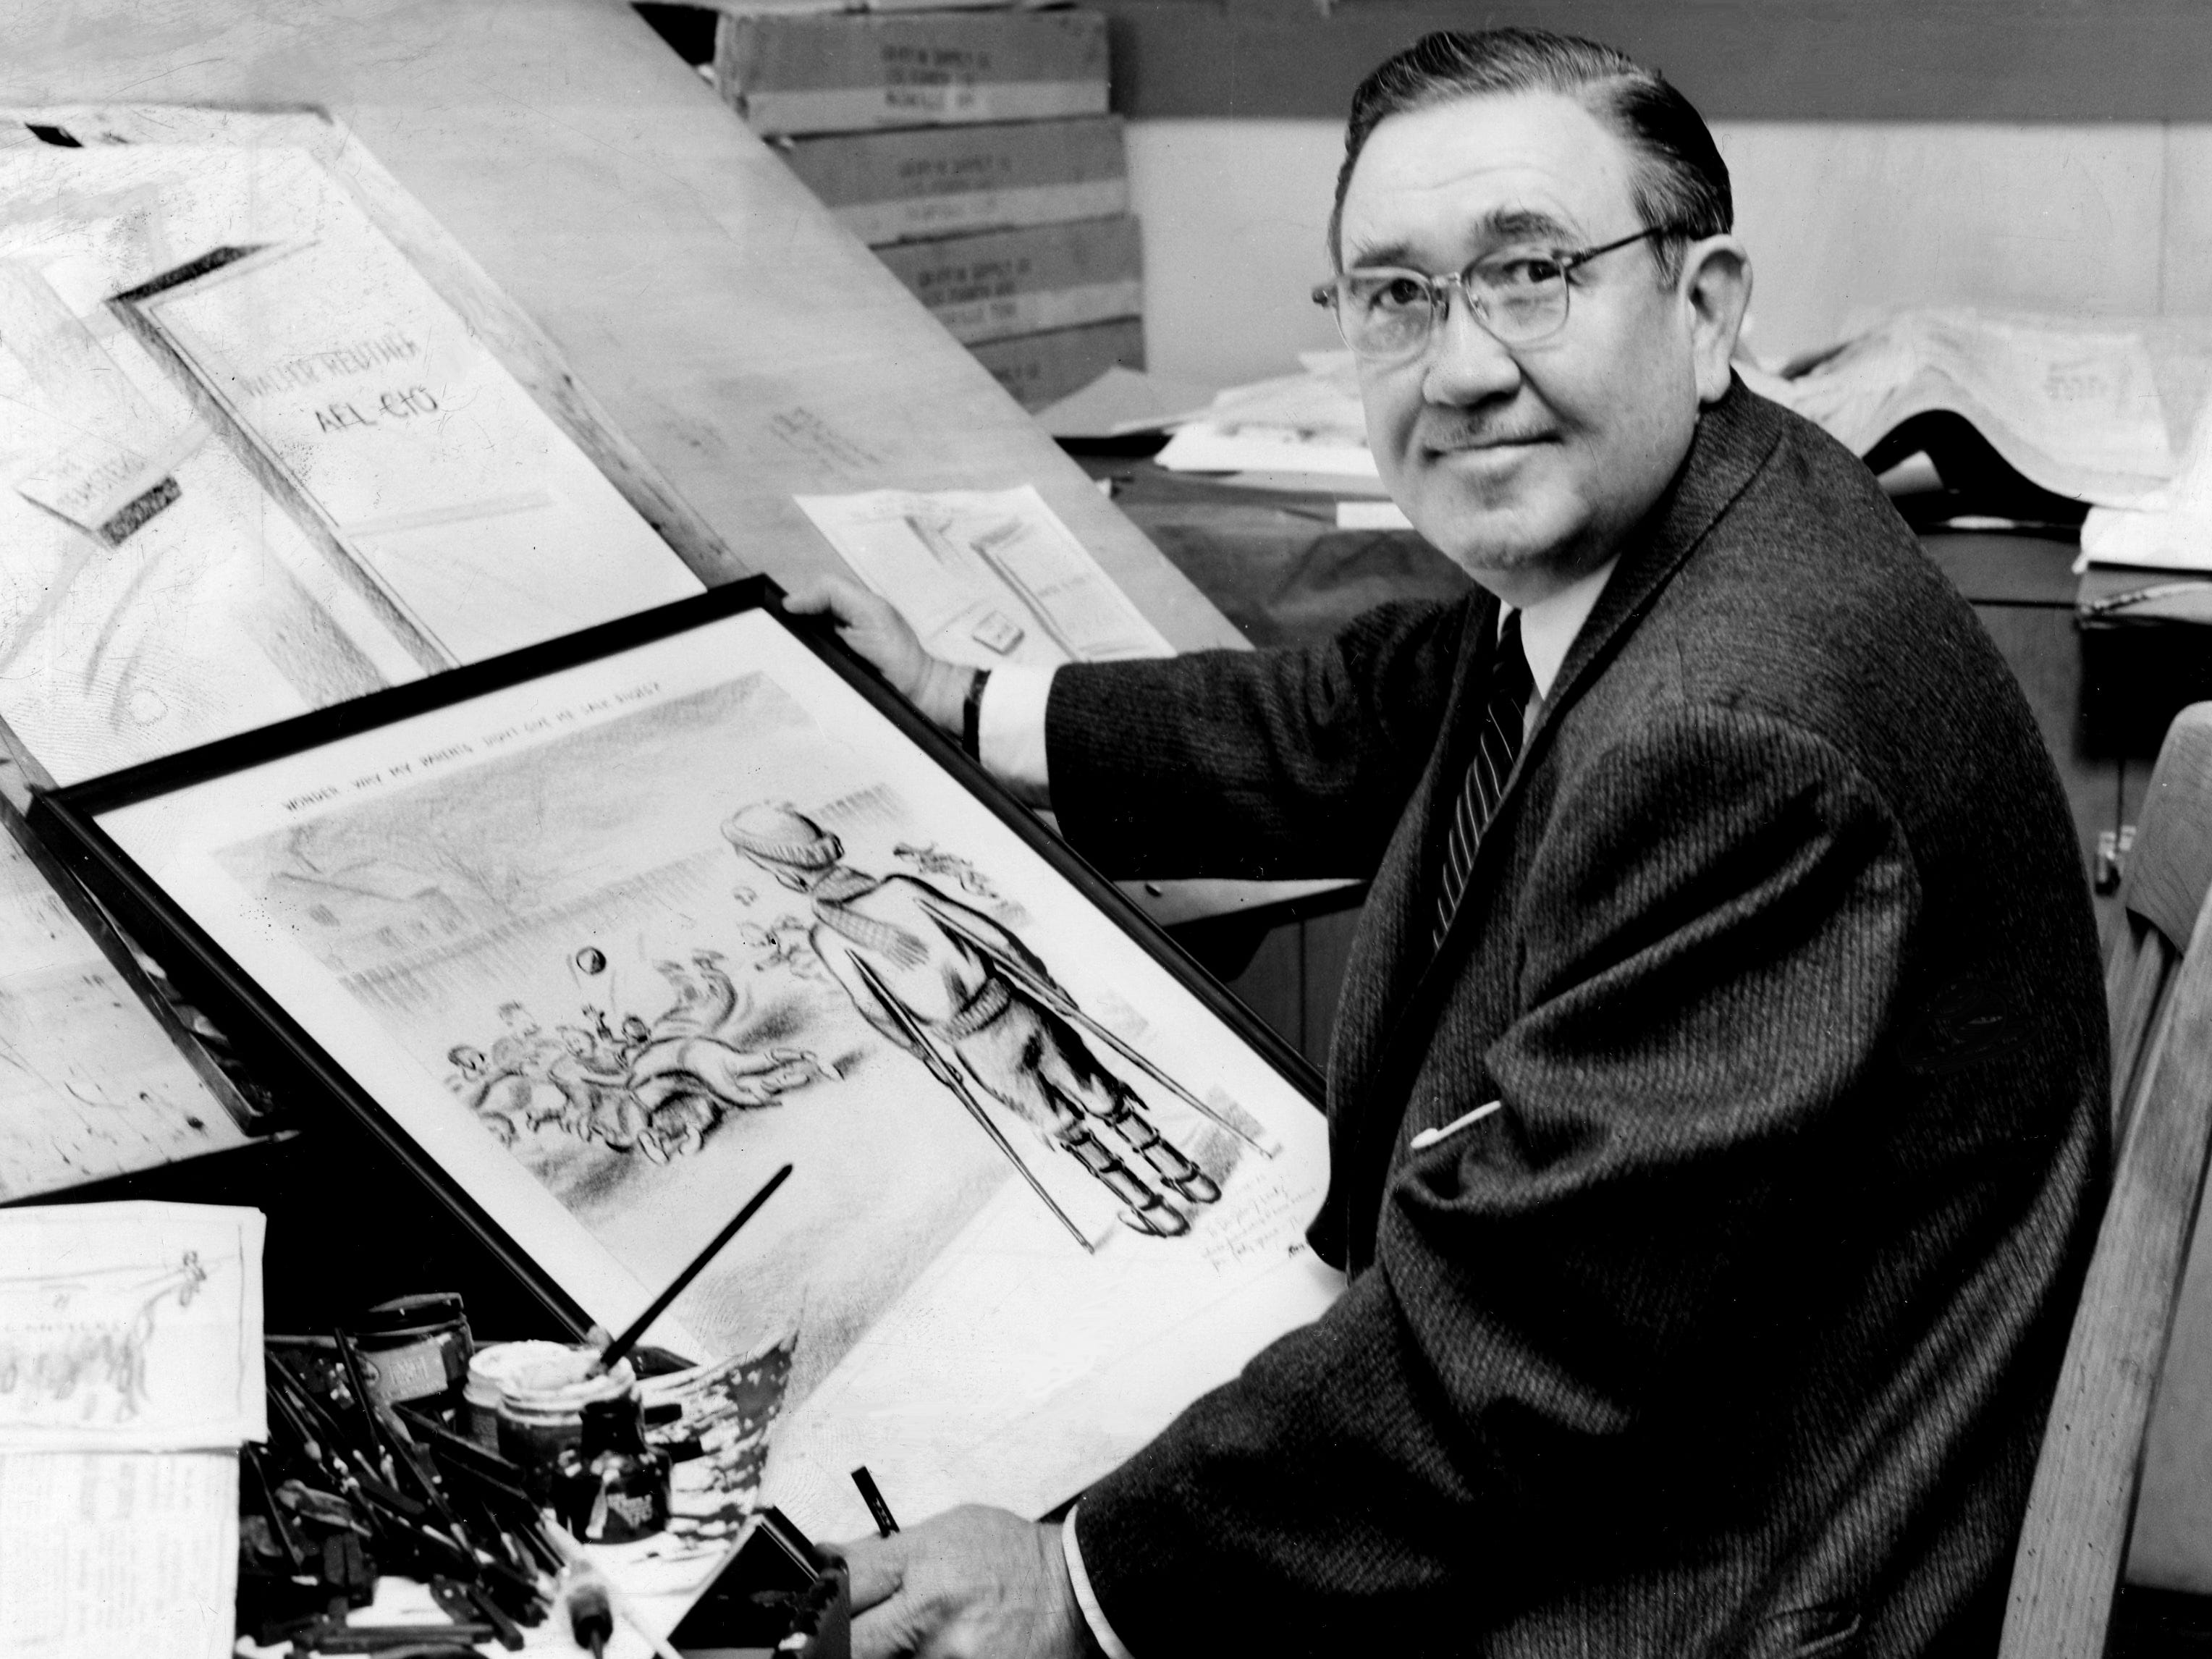 Tennessean editorial cartoonist Tom Little looks up from his sketch Feb. 4, 1959, that won him a Pulitzer Prize two years before.